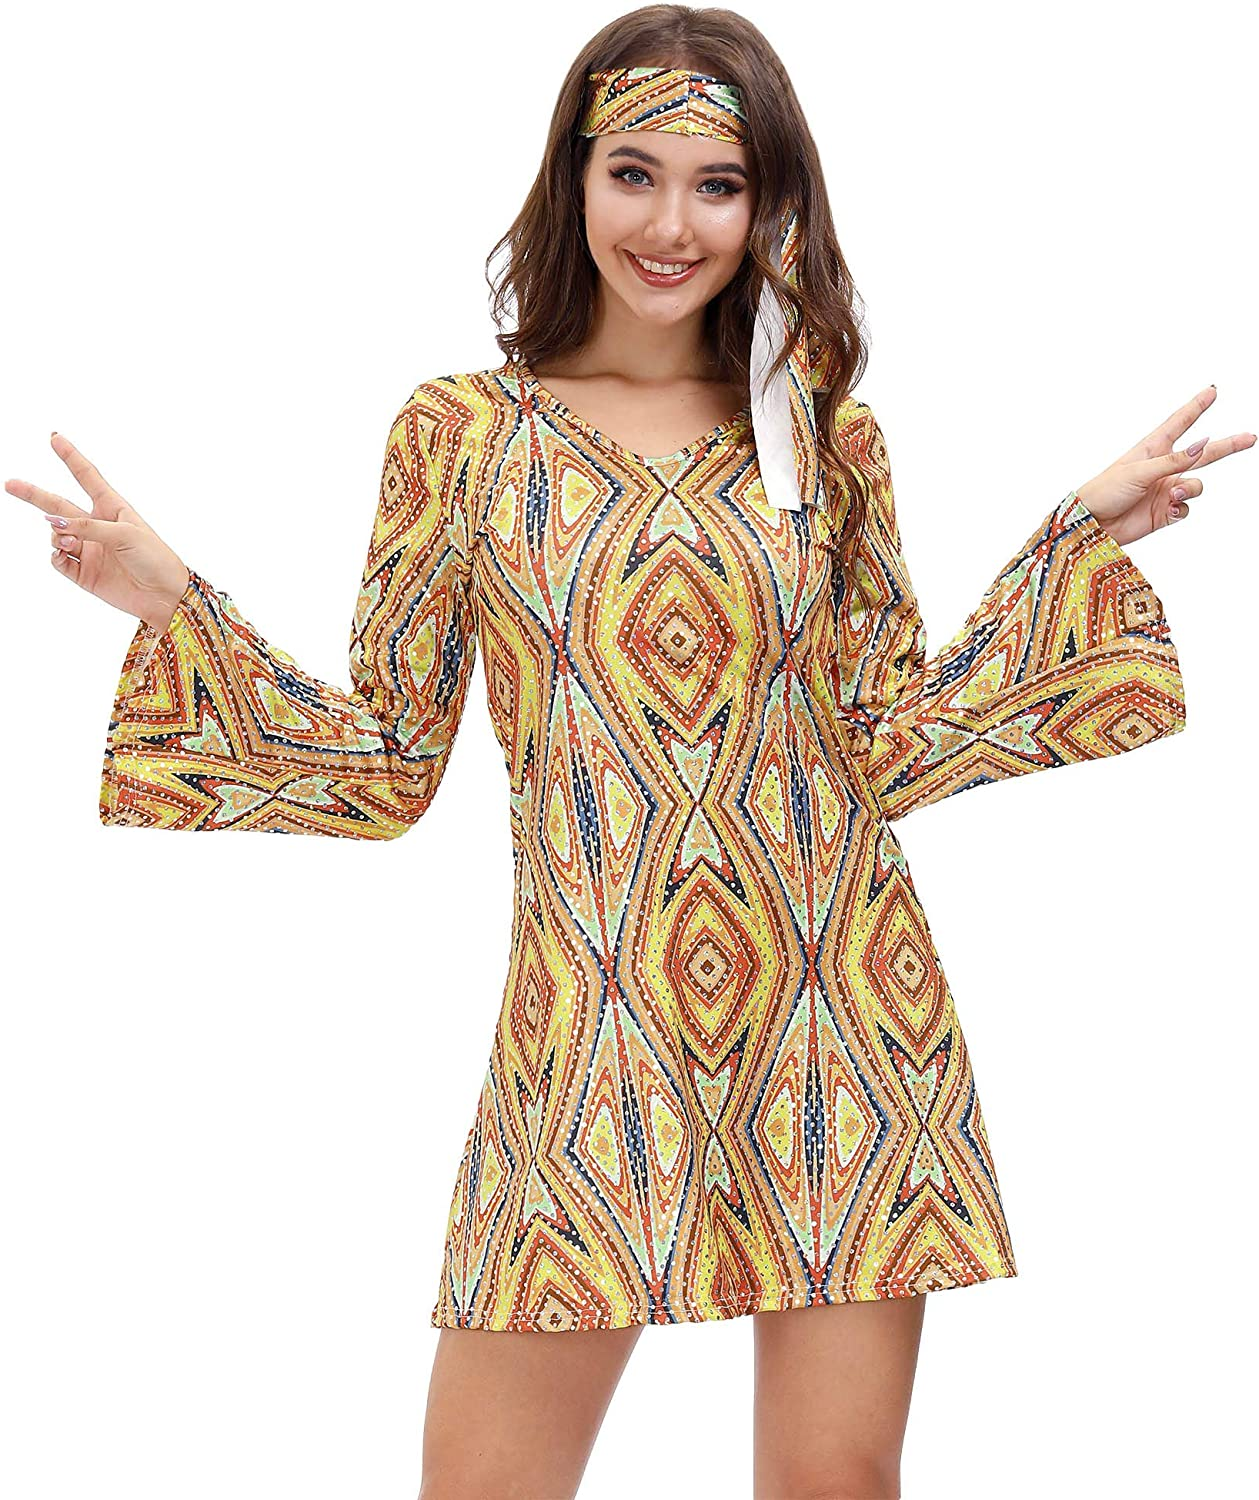 Hippie Dress | Long, Boho, Vintage, 70s Clarisbelle Womens Halloween Party Disco Sensation 70s Dance Costume  AT vintagedancer.com